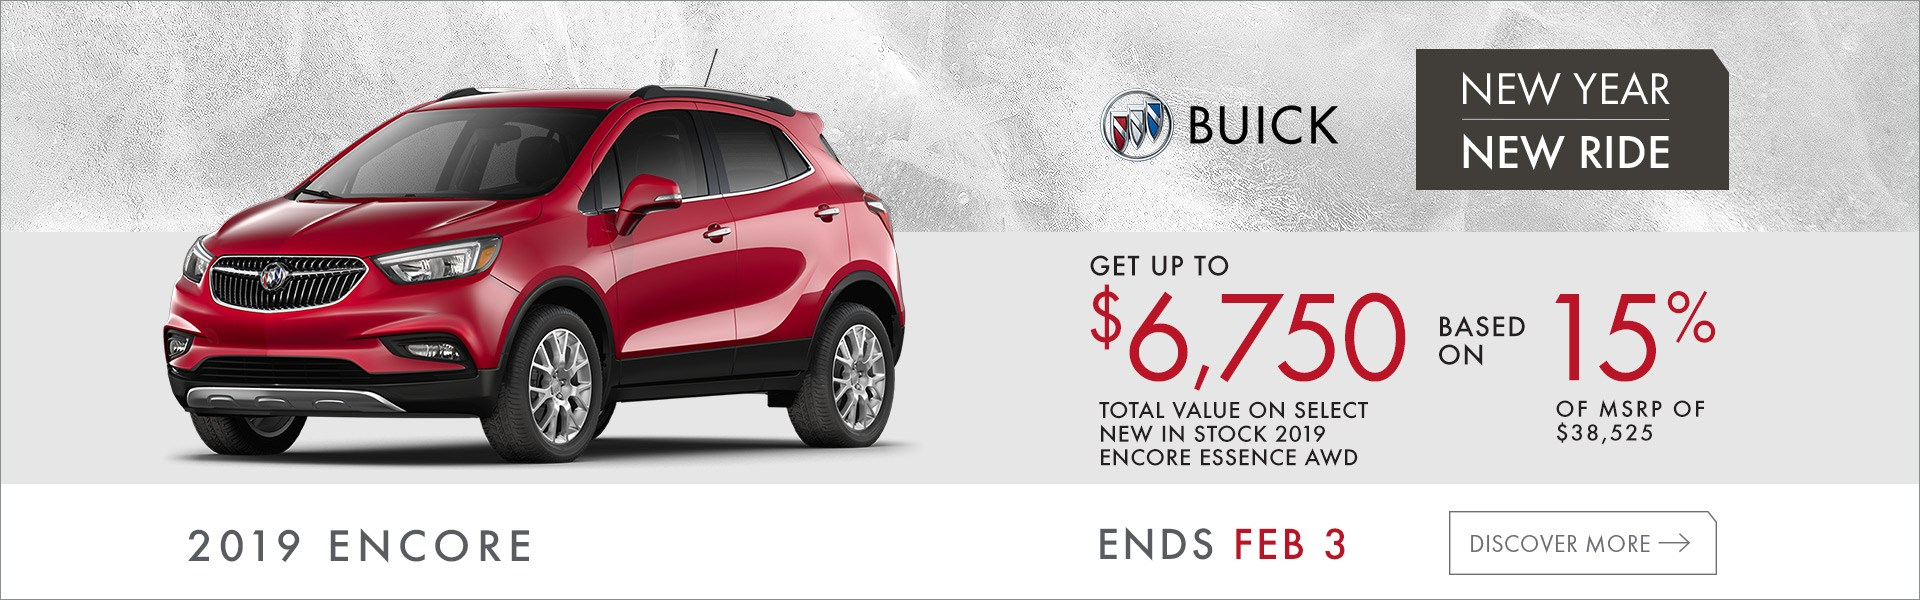 15% Off MSRP on 2019 Buick Encore